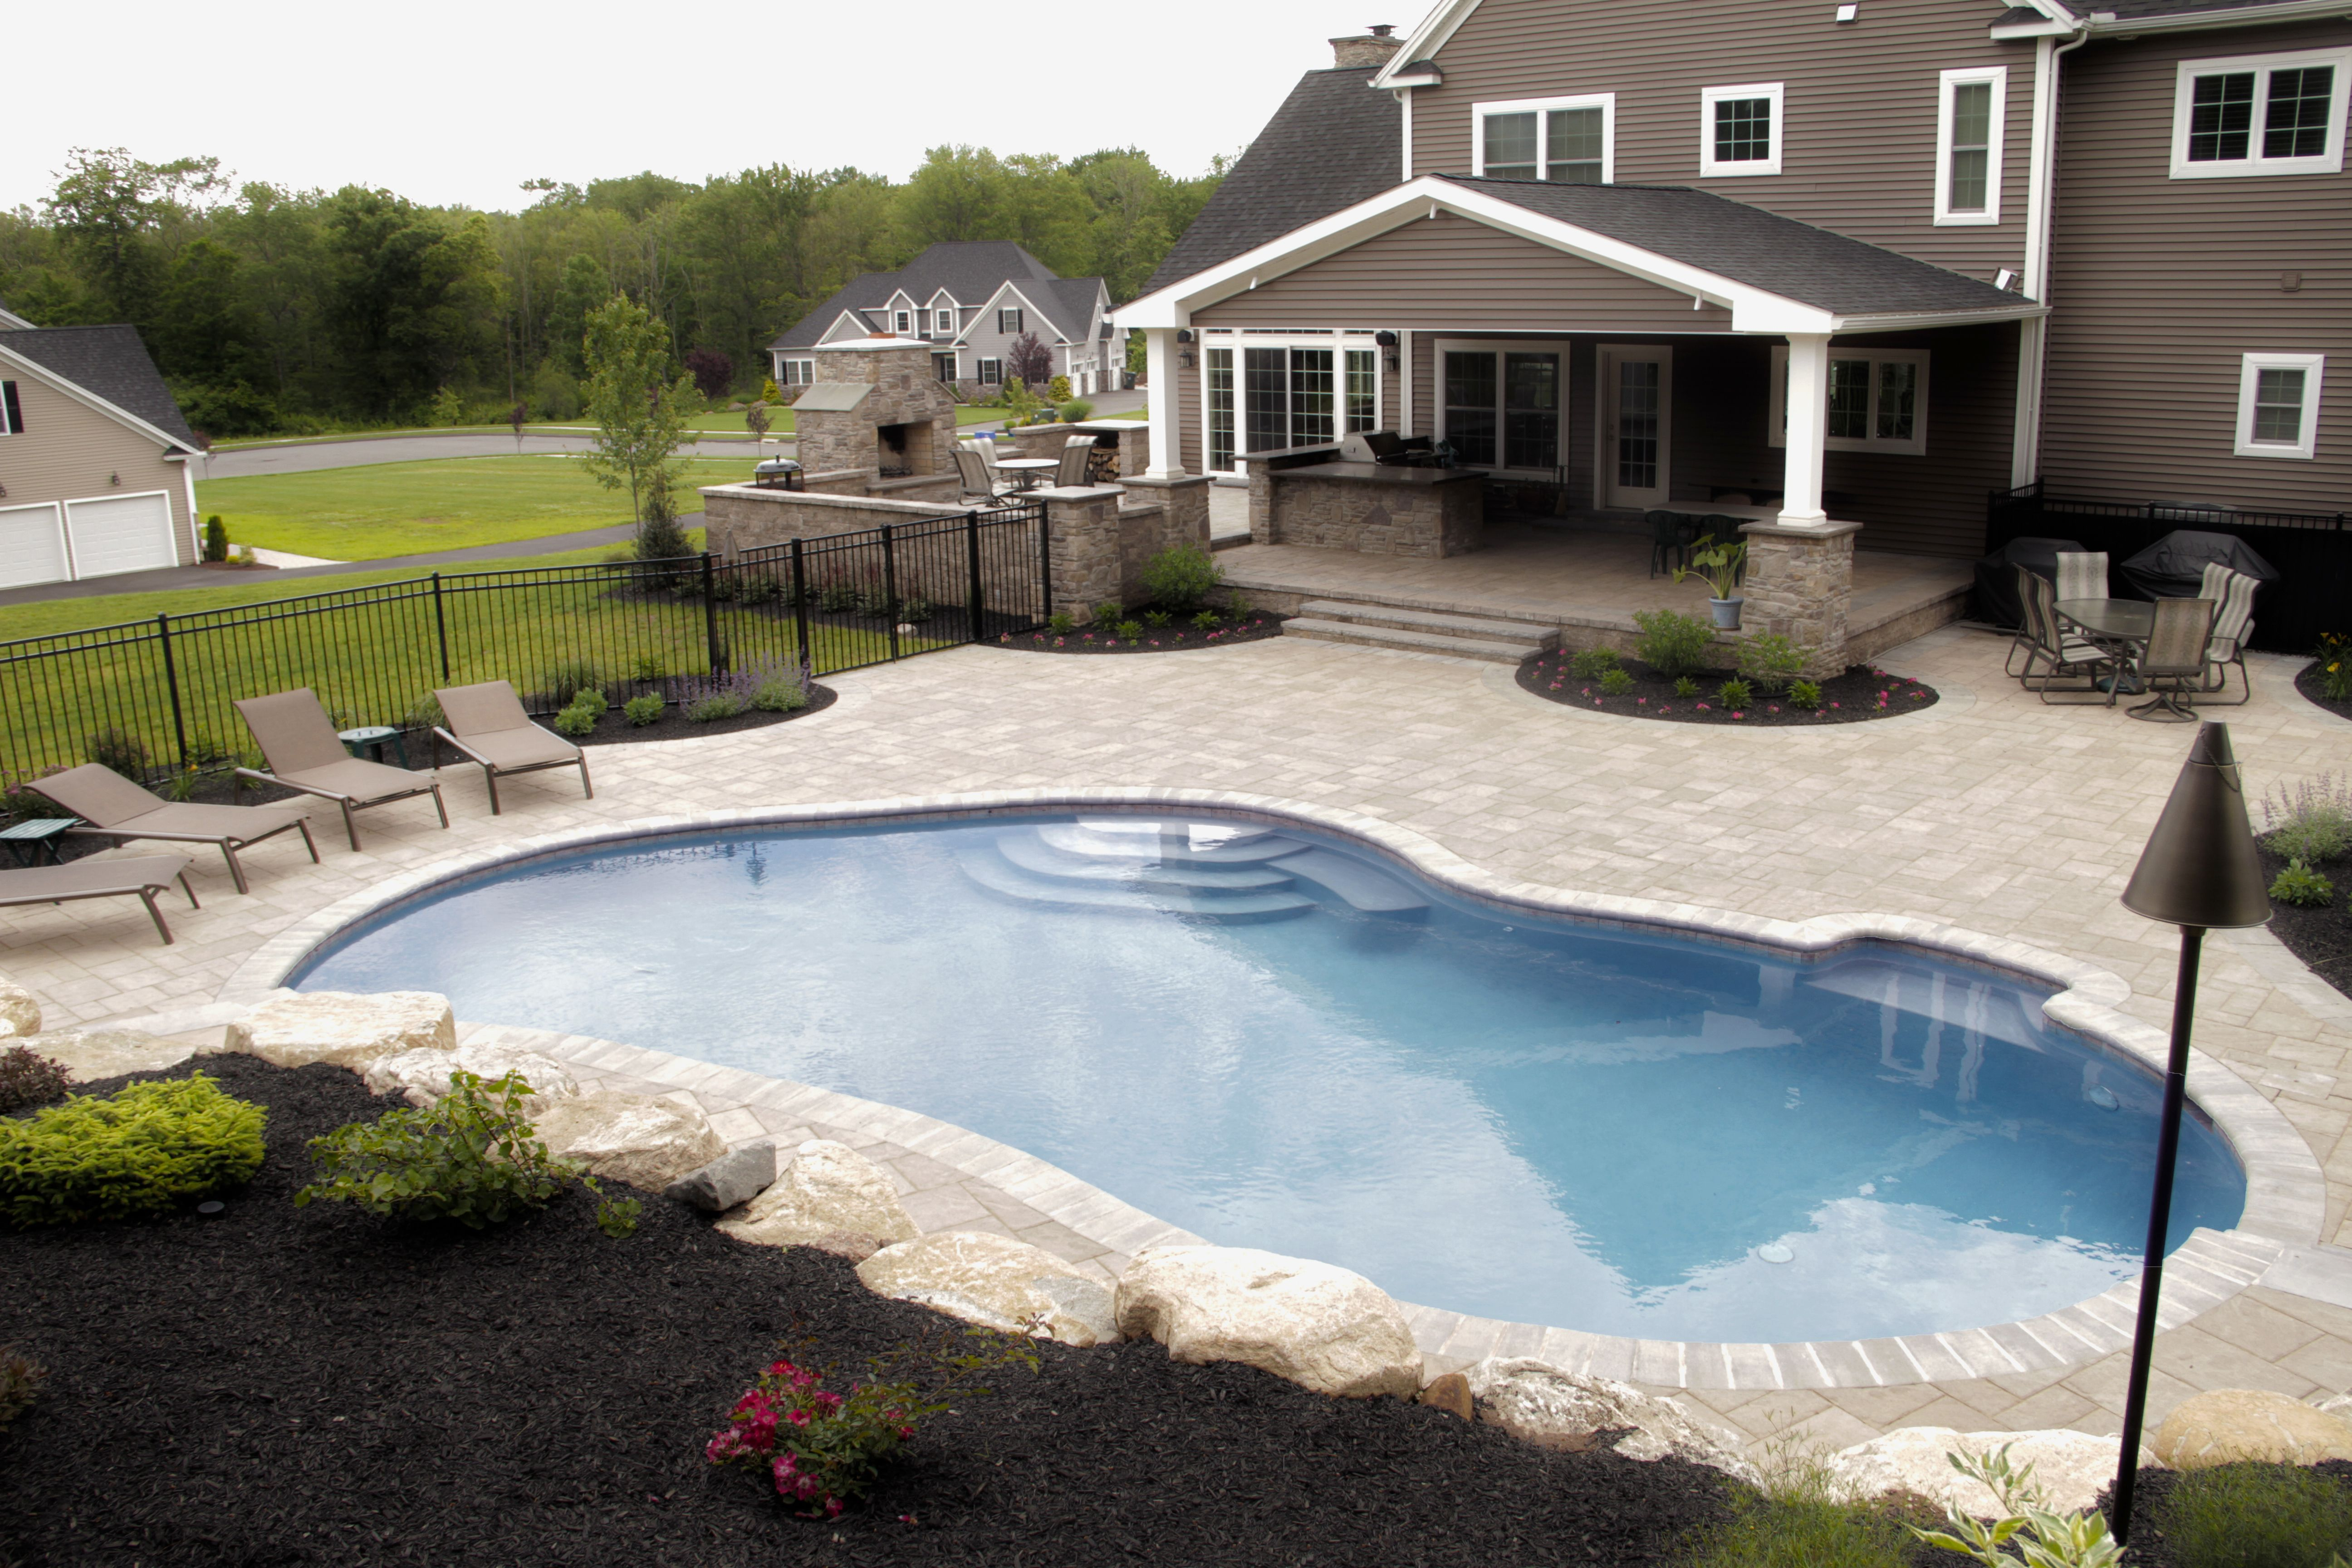 Charming This Gorgeous Pool Deck And Patio Define True Outdoor Rooms With Covered  Kitchen, Living Room